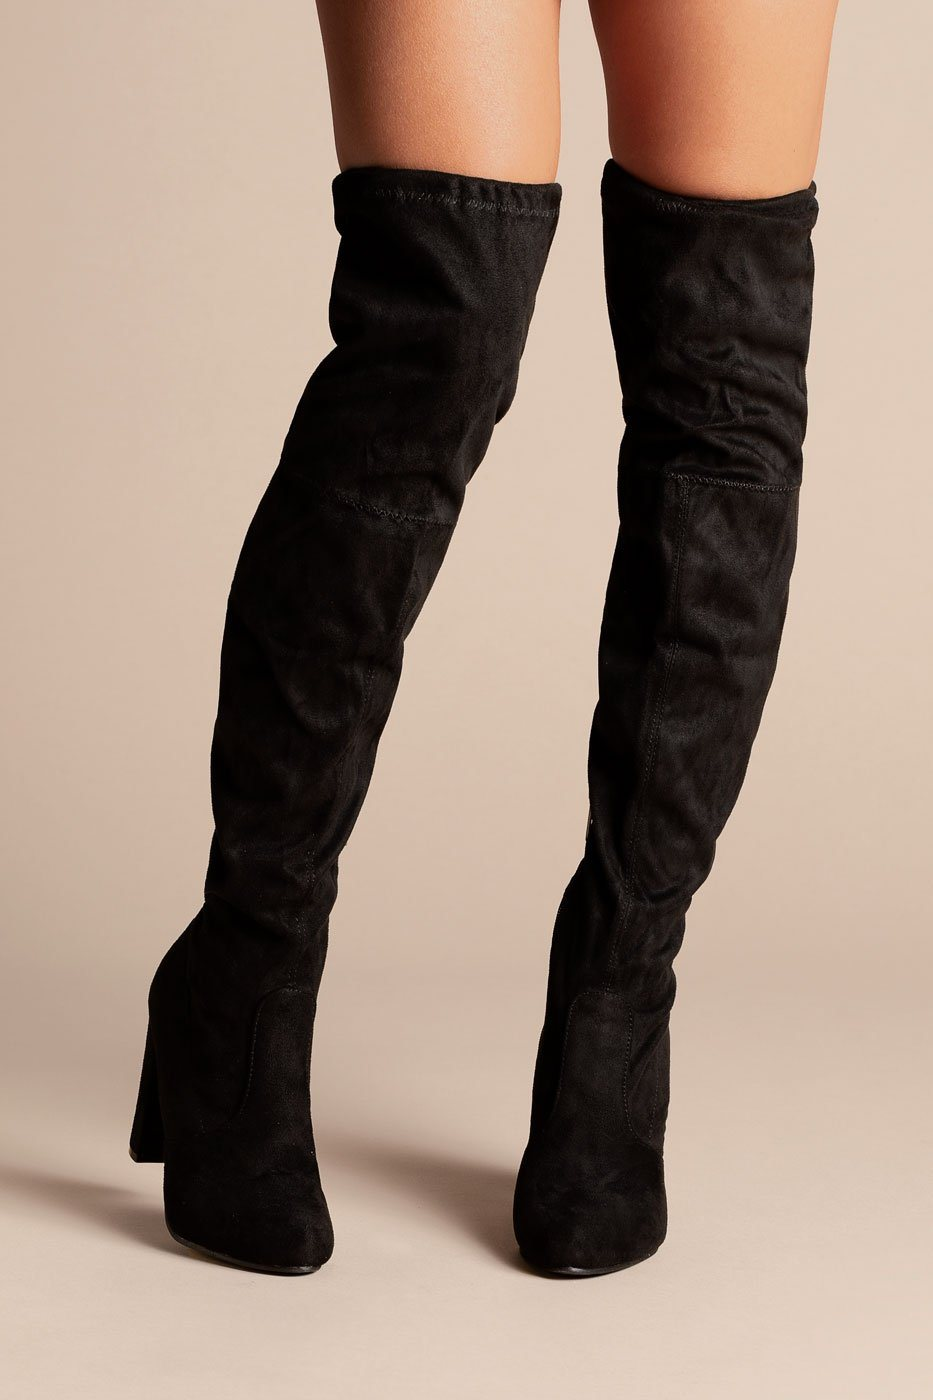 Midnight City Black Thigh High Boots